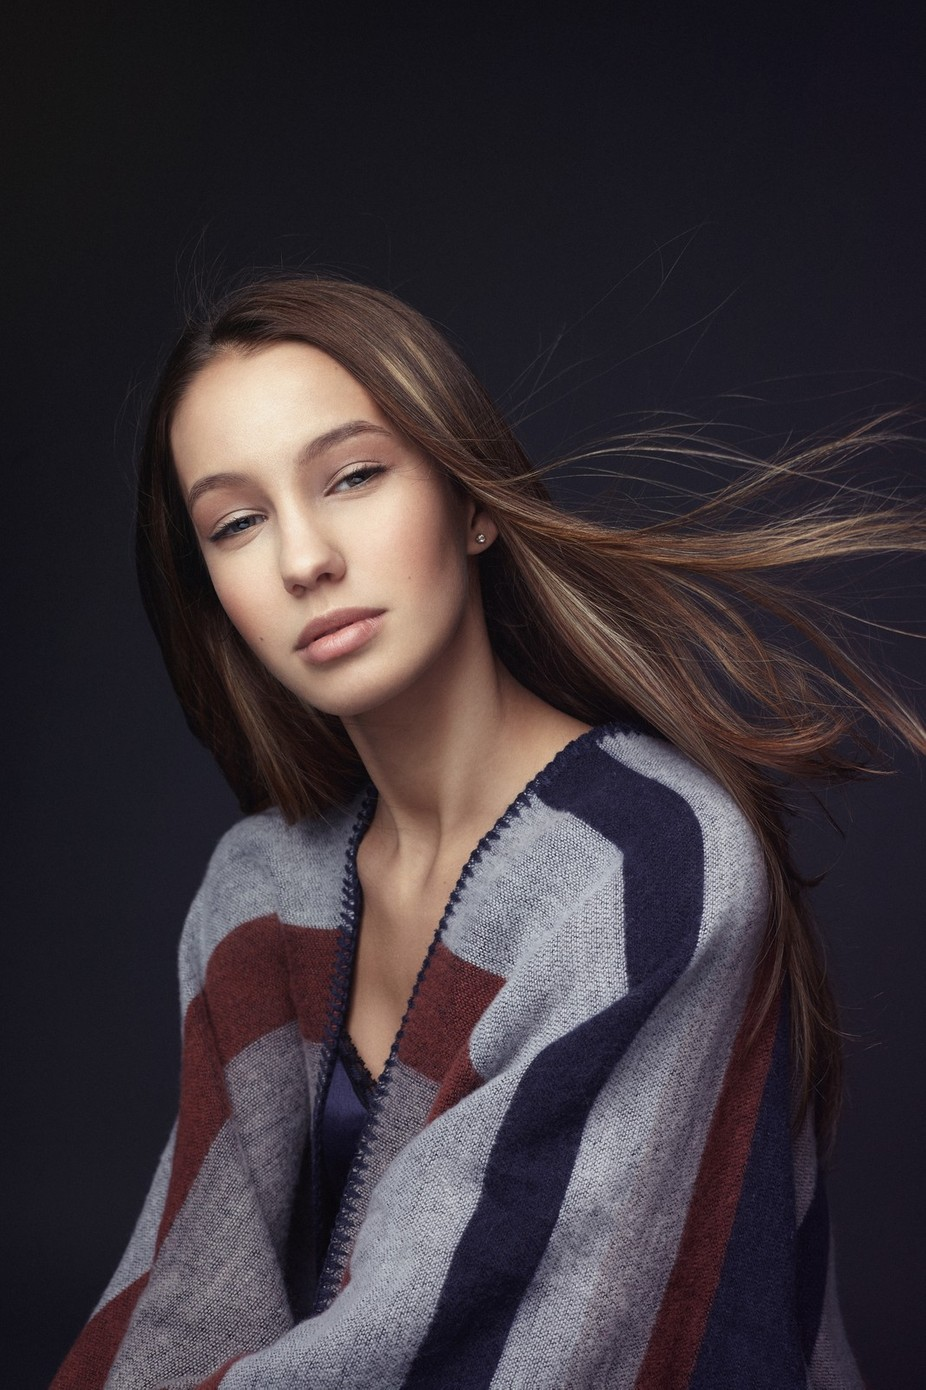 Ambra by Bloups - Her In The Studio Photo Contest